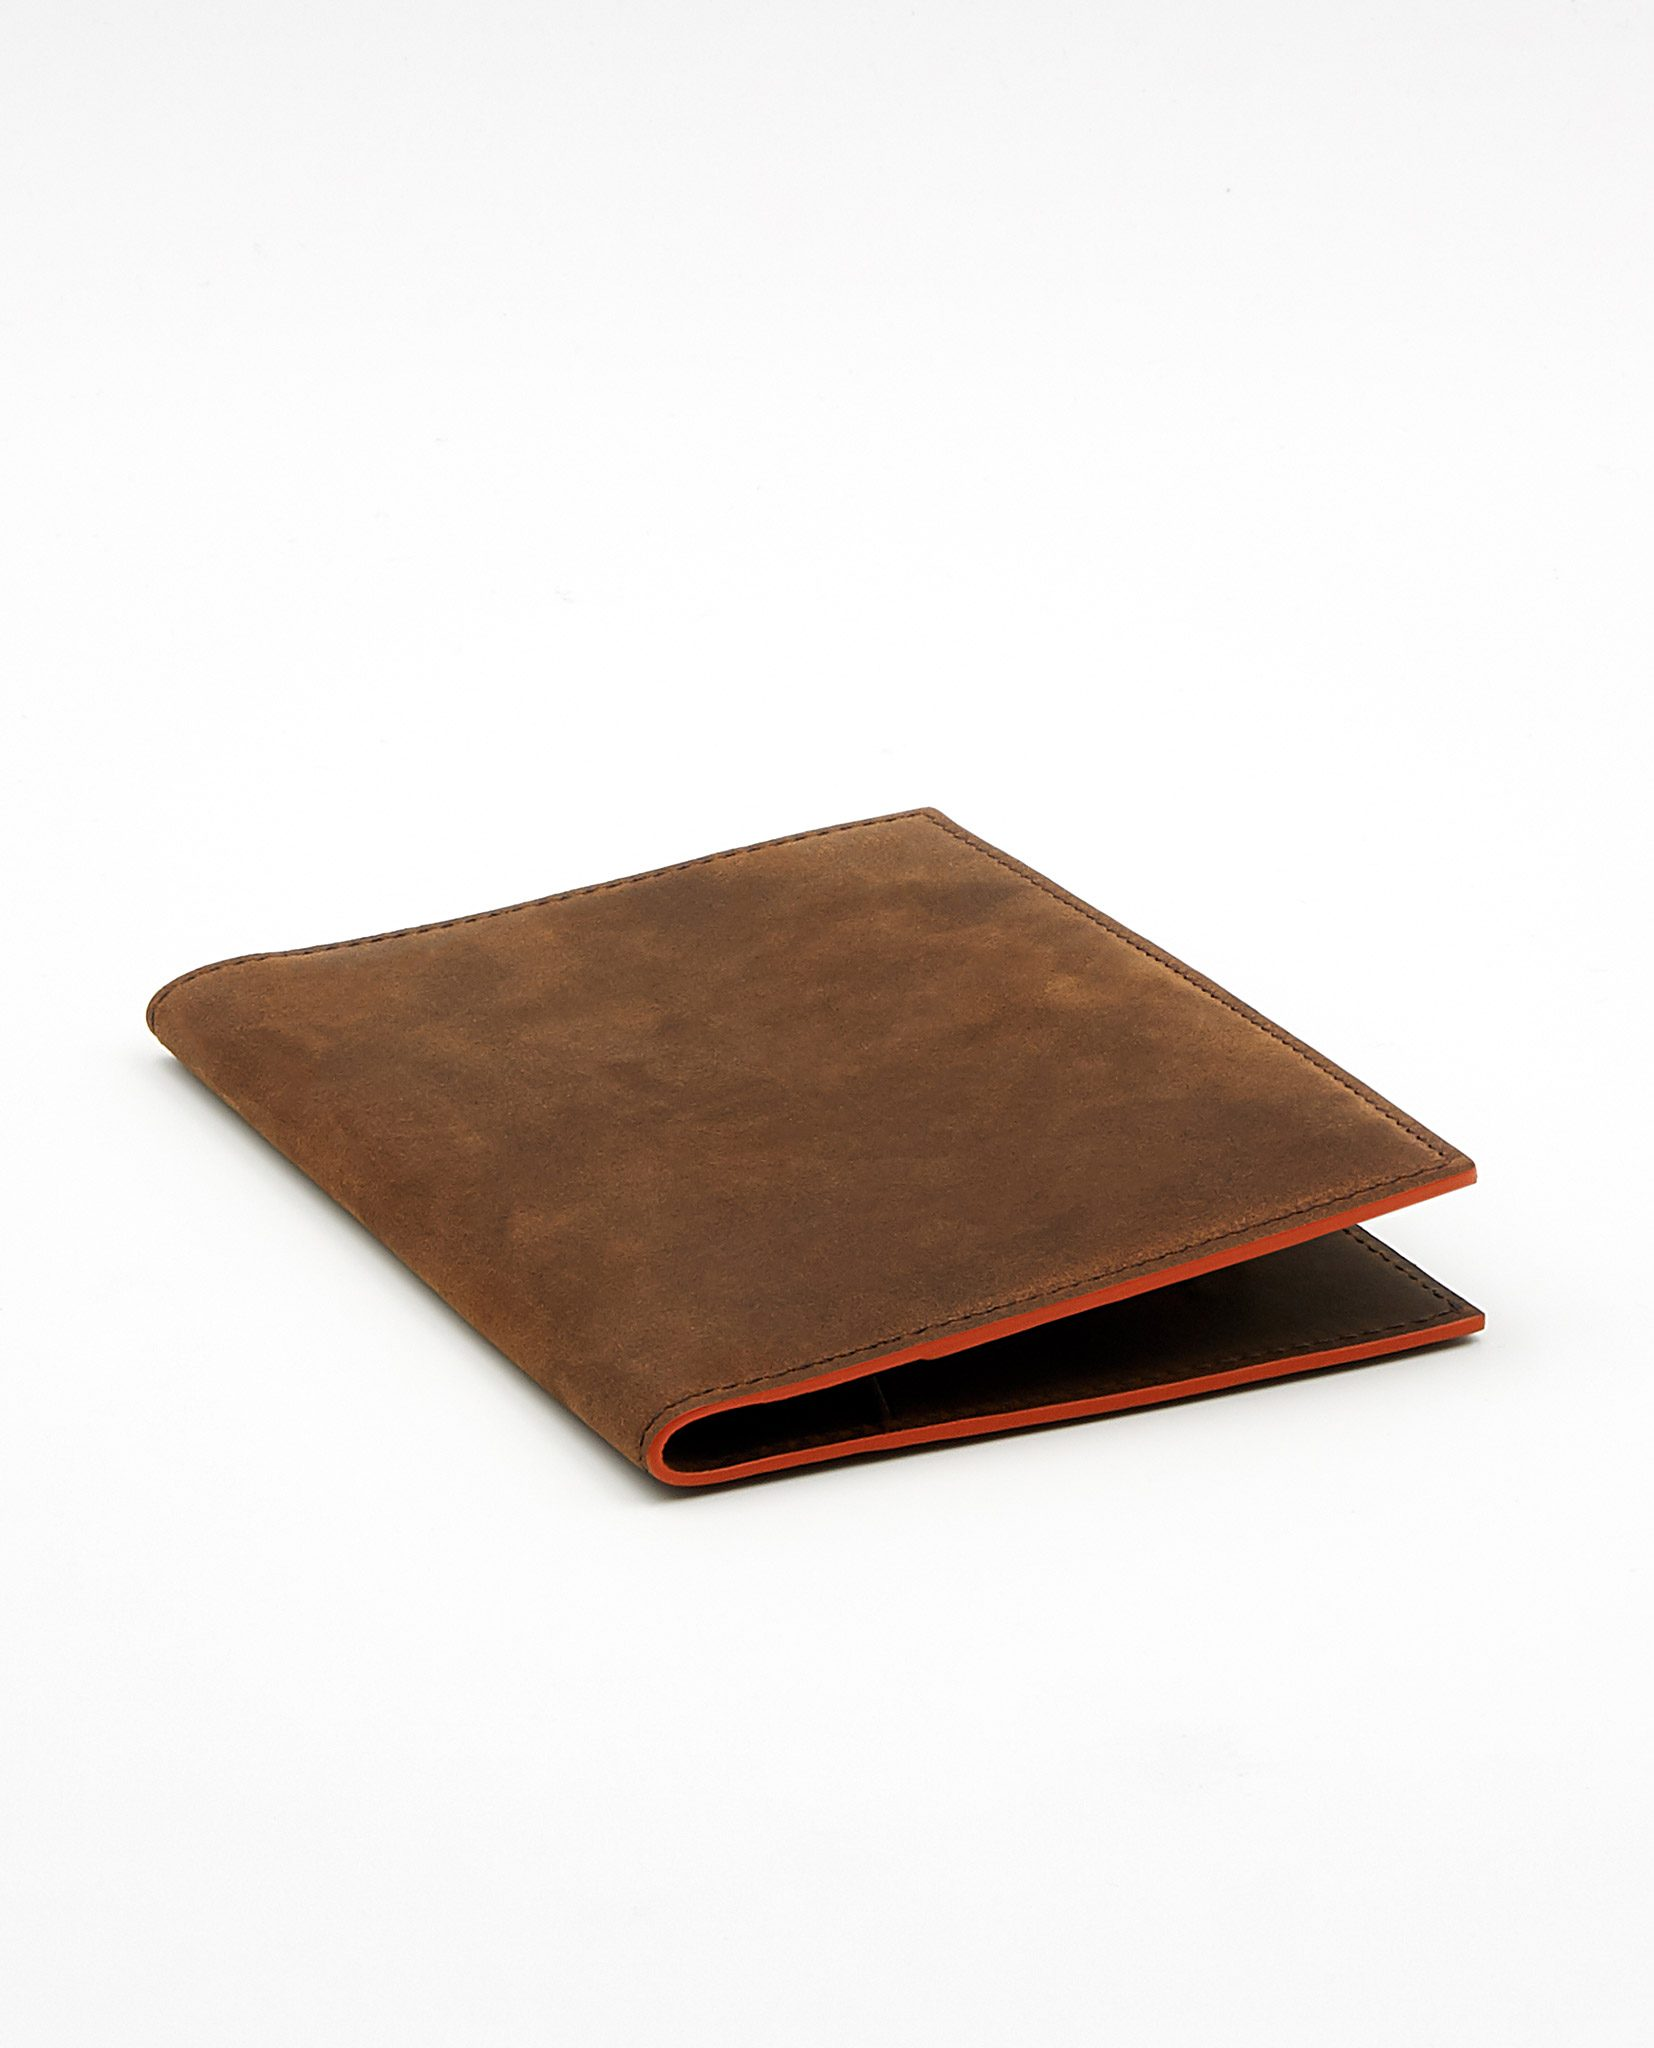 Soofre Vintage Vegetable Tanned Leather Passport Holder Color Brown Orange